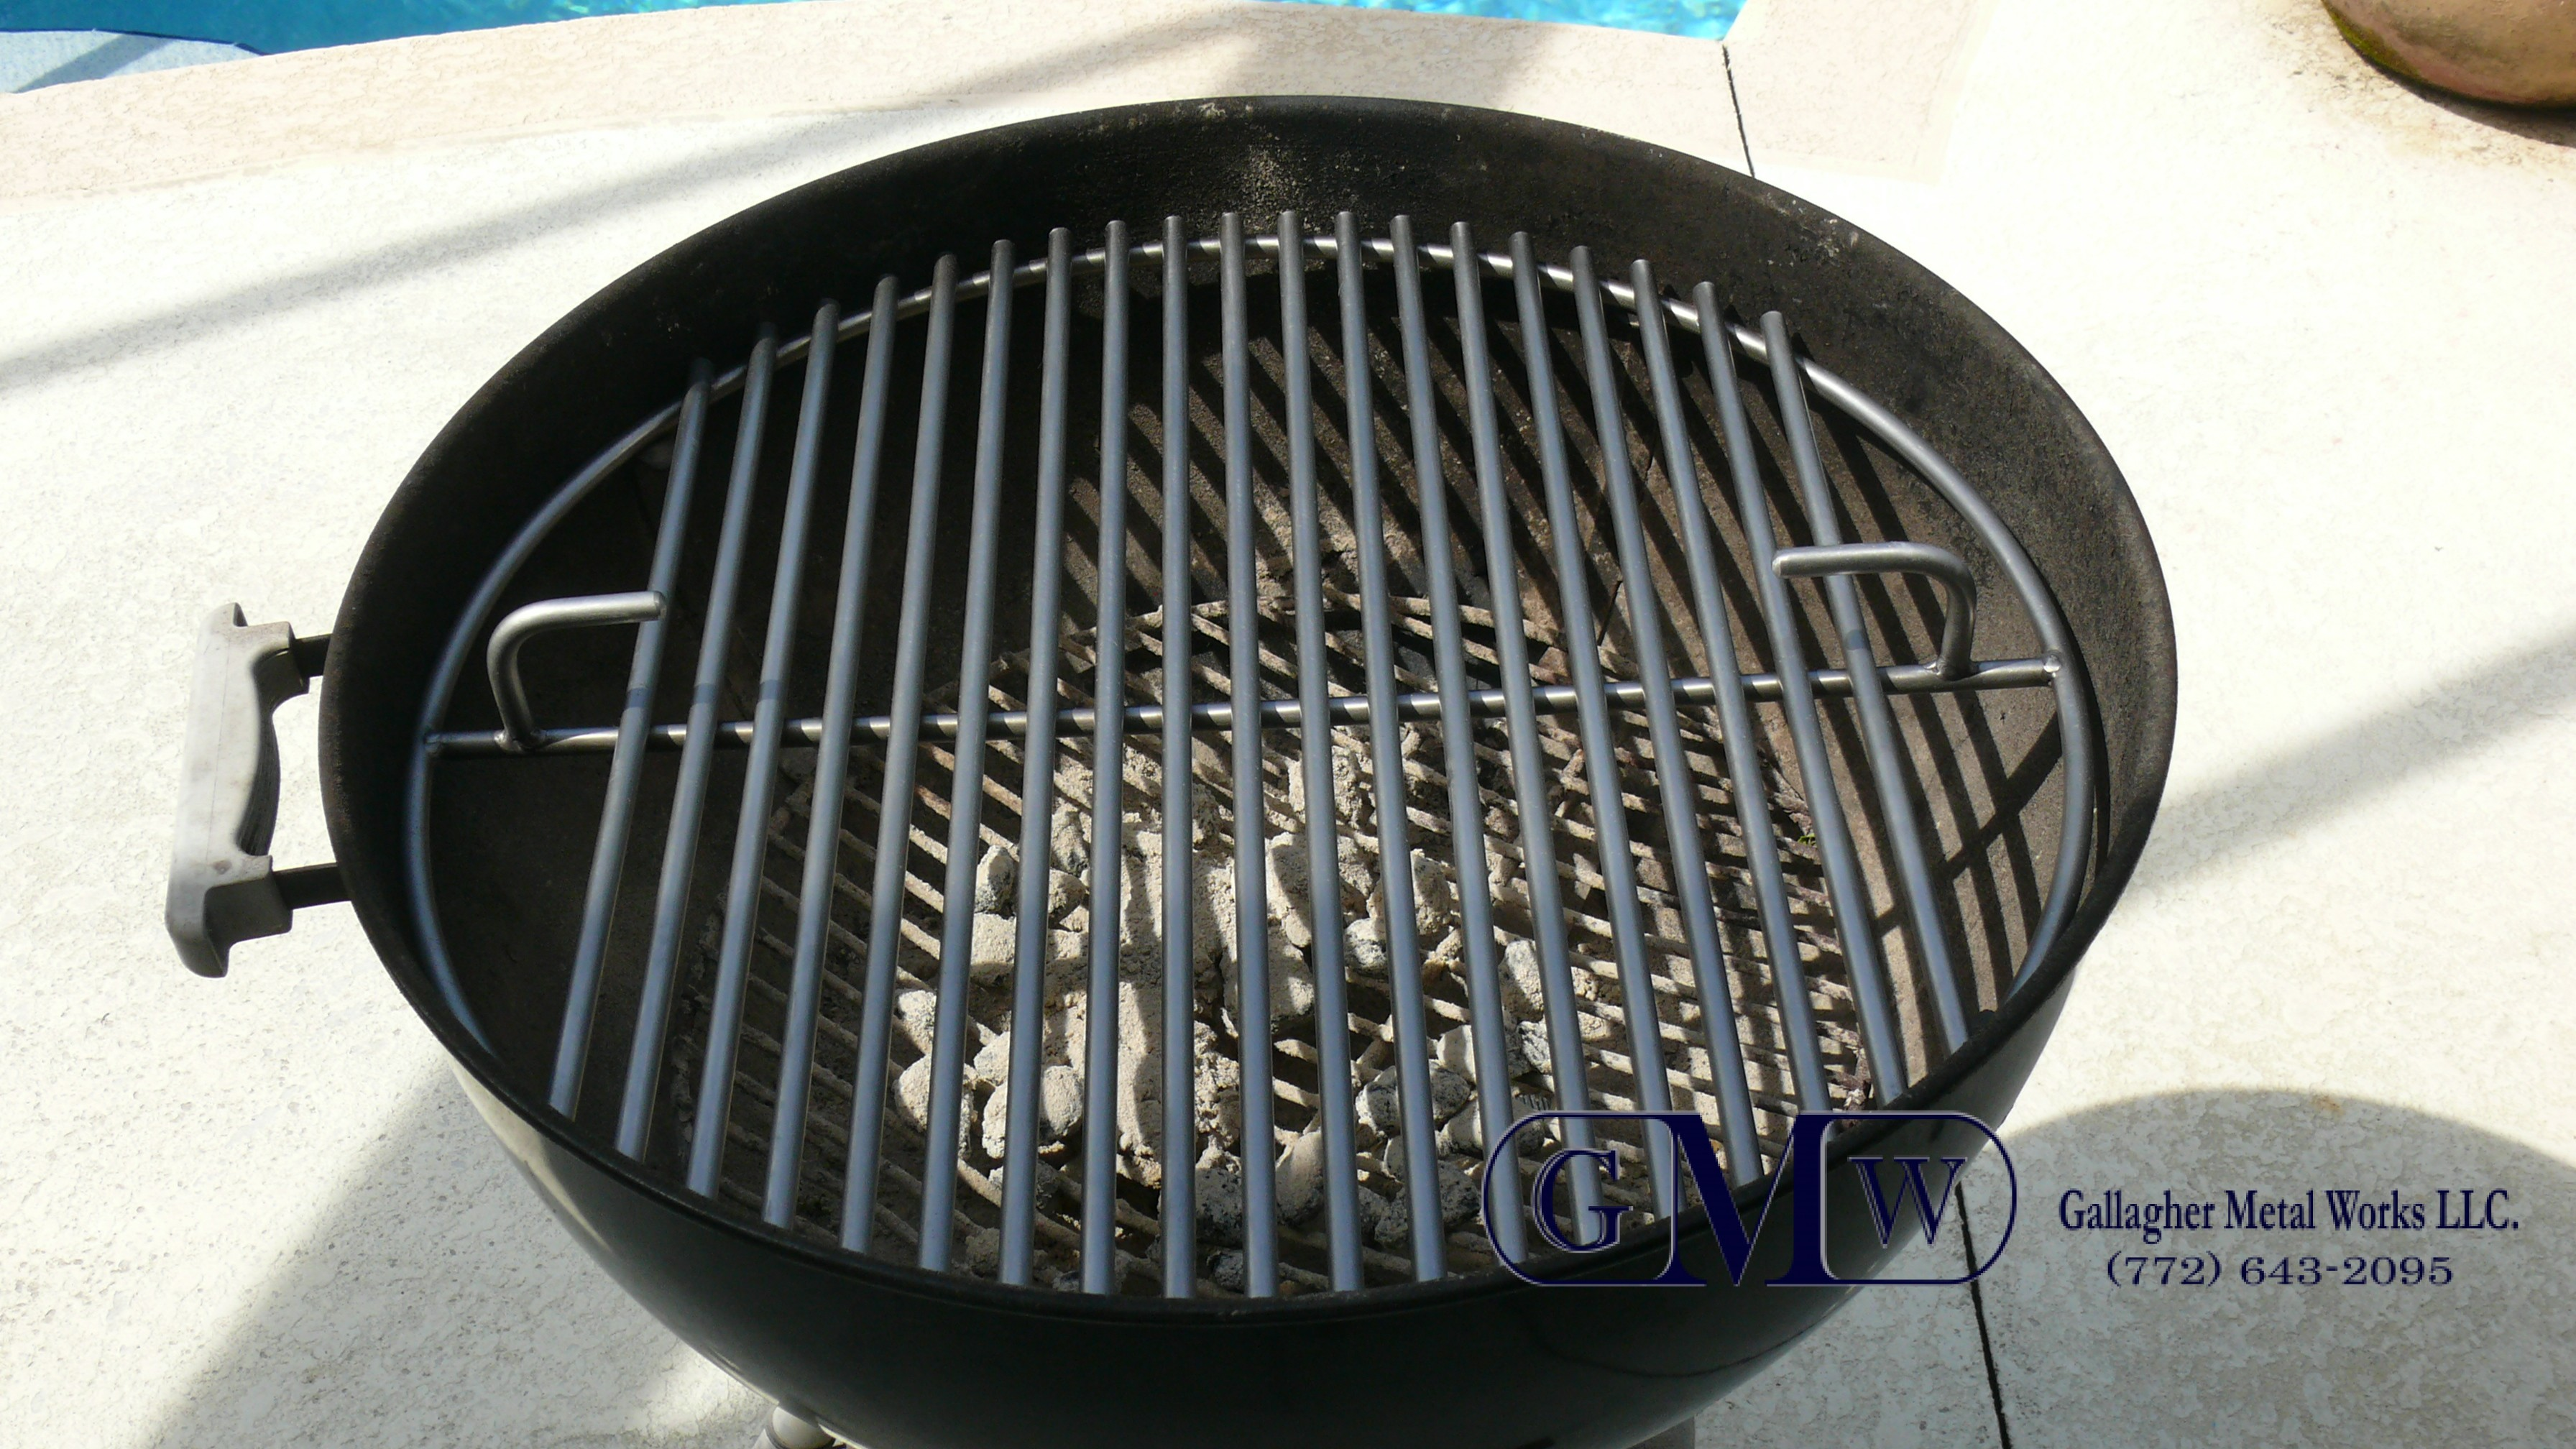 304 stainless steel 22 inch grill grate 304 stainless steel 22 inch bar grill grate dailygadgetfo Image collections